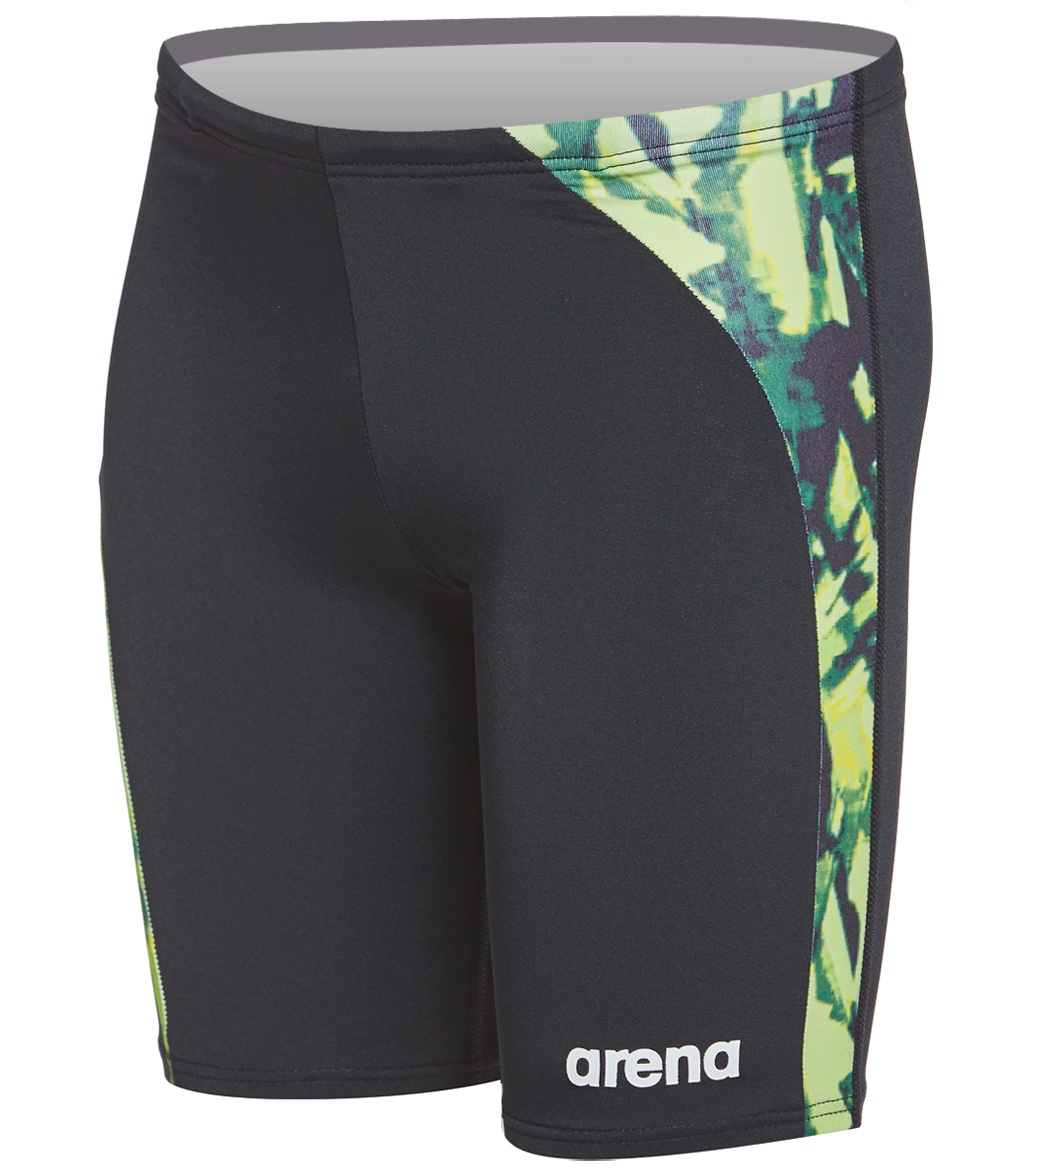 Arena Boys' Painted Jr. Jammer Swimsuit At SwimOutlet.com